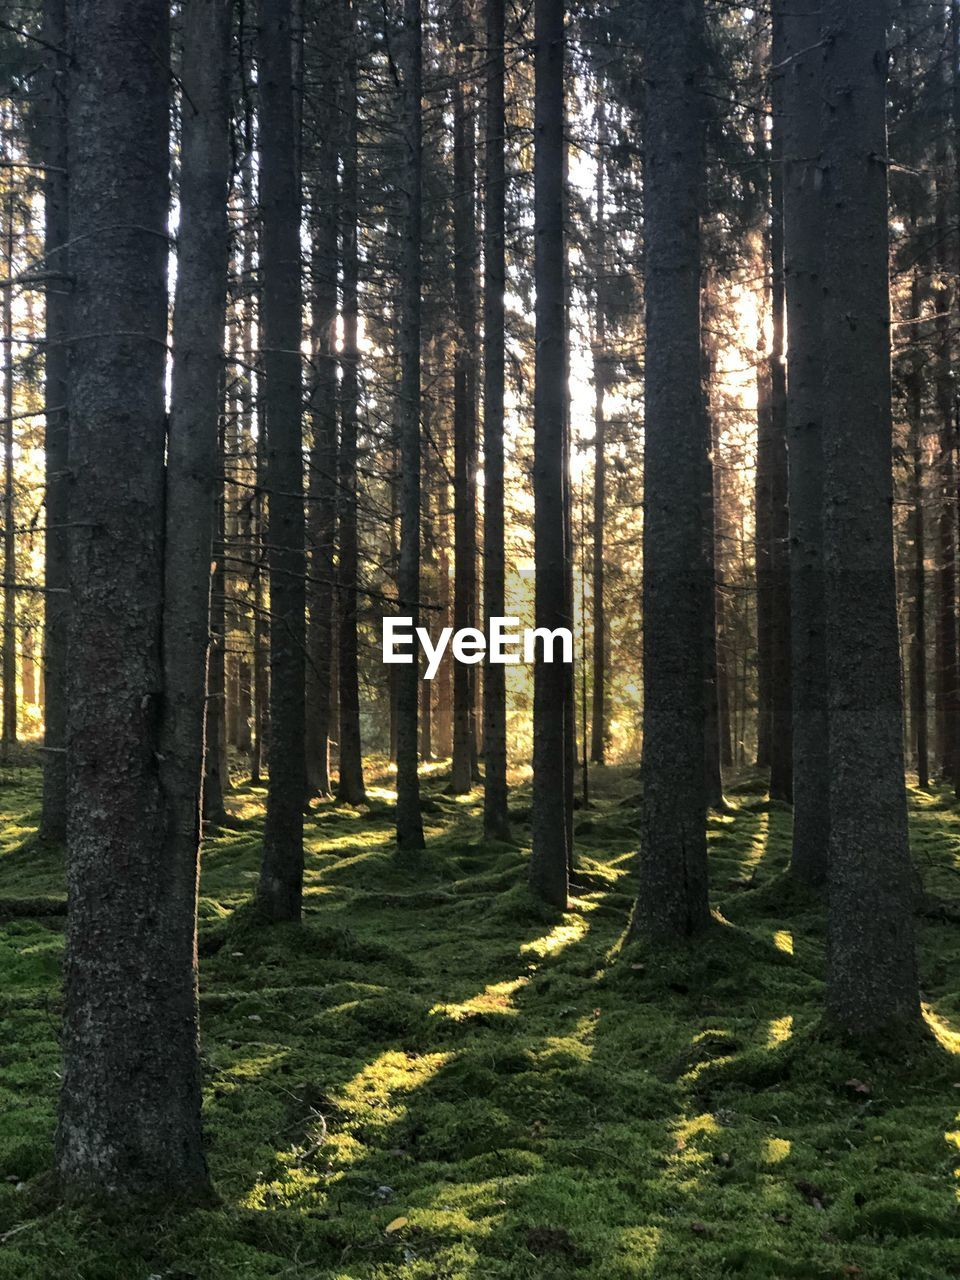 tree, forest, plant, land, trunk, tree trunk, woodland, growth, nature, beauty in nature, day, sunlight, tranquility, scenics - nature, no people, tranquil scene, non-urban scene, environment, landscape, outdoors, coniferous tree, pine woodland